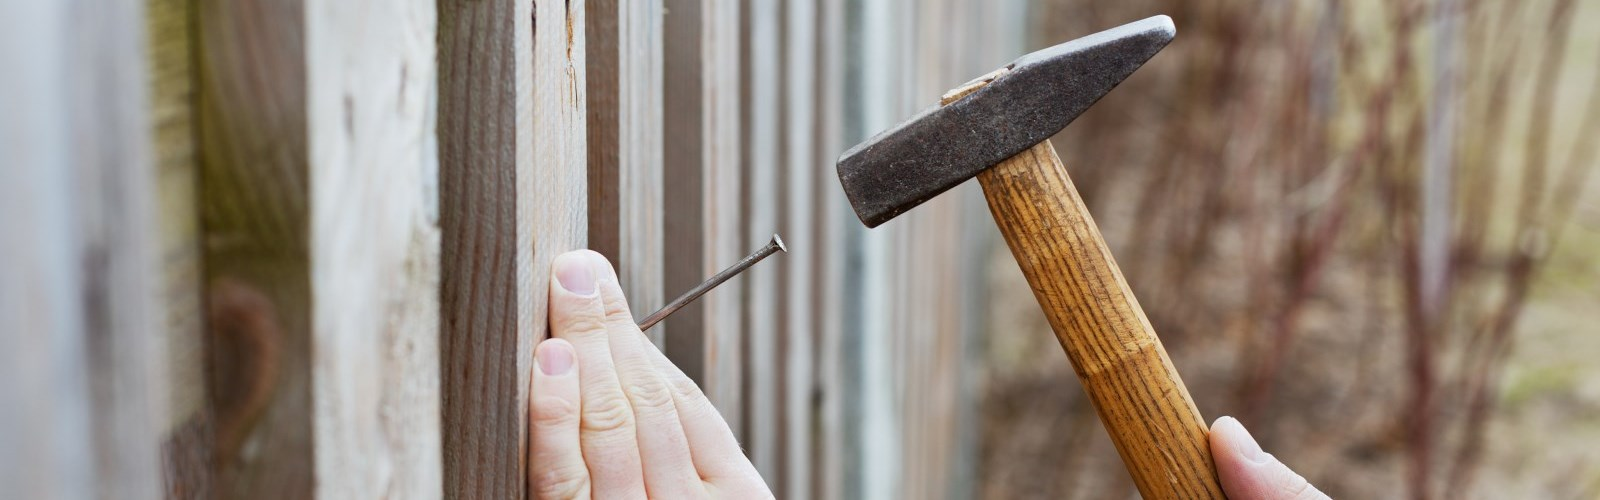 Hammer and fence